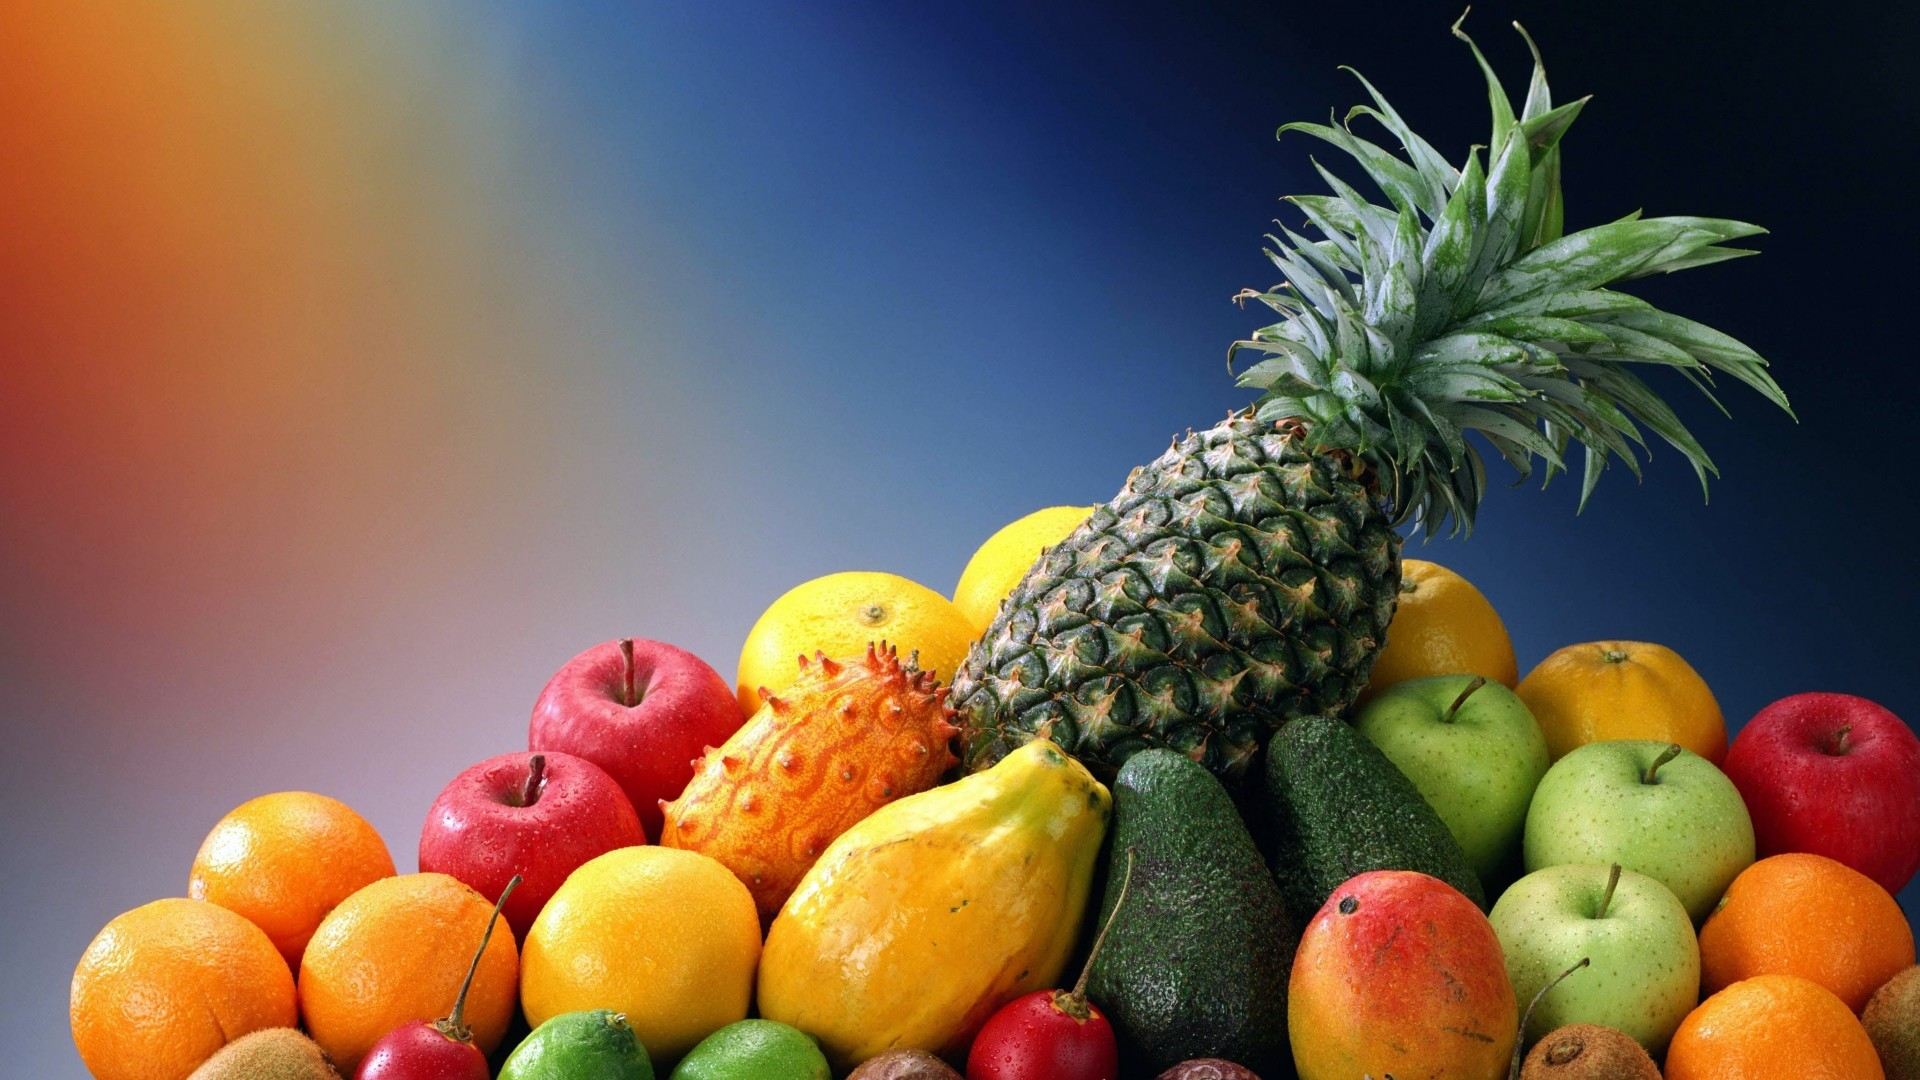 1920x1080  Wallpaper fruit, exotic, pineapple, apple, avocado, kiwi